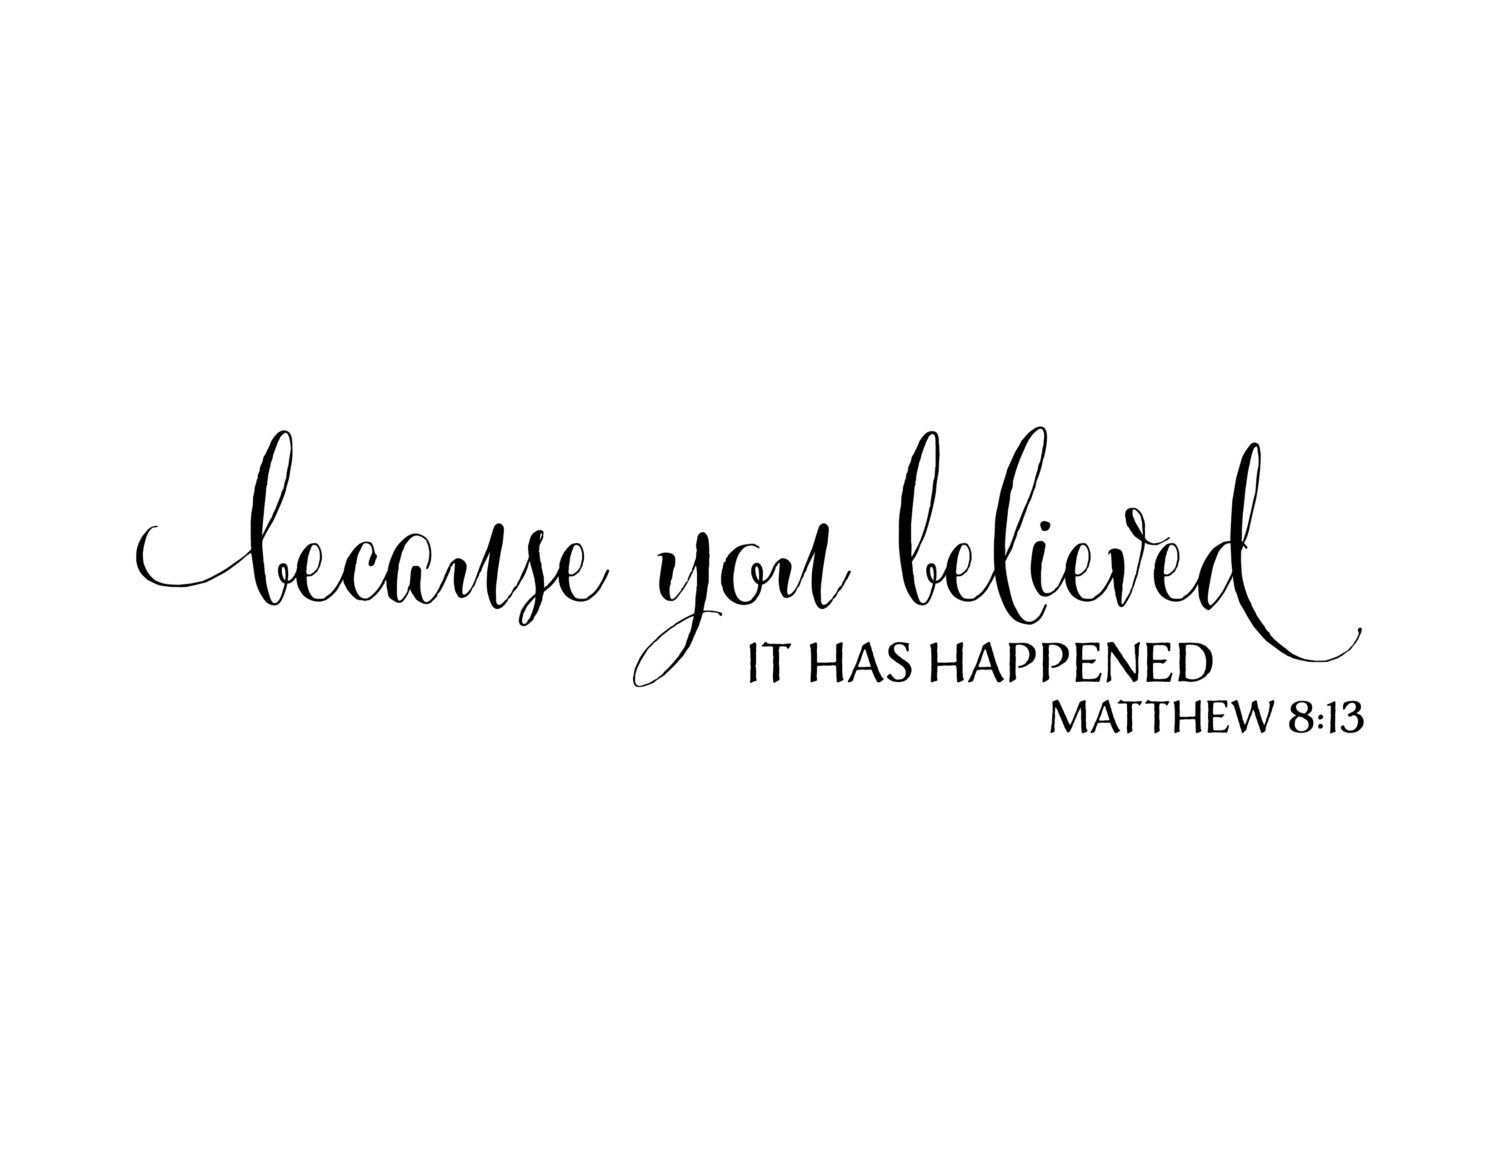 matthew 813 because you believed it has happened scripture bible verse living room church art removable vinyl decal sticker mat8v13 0003